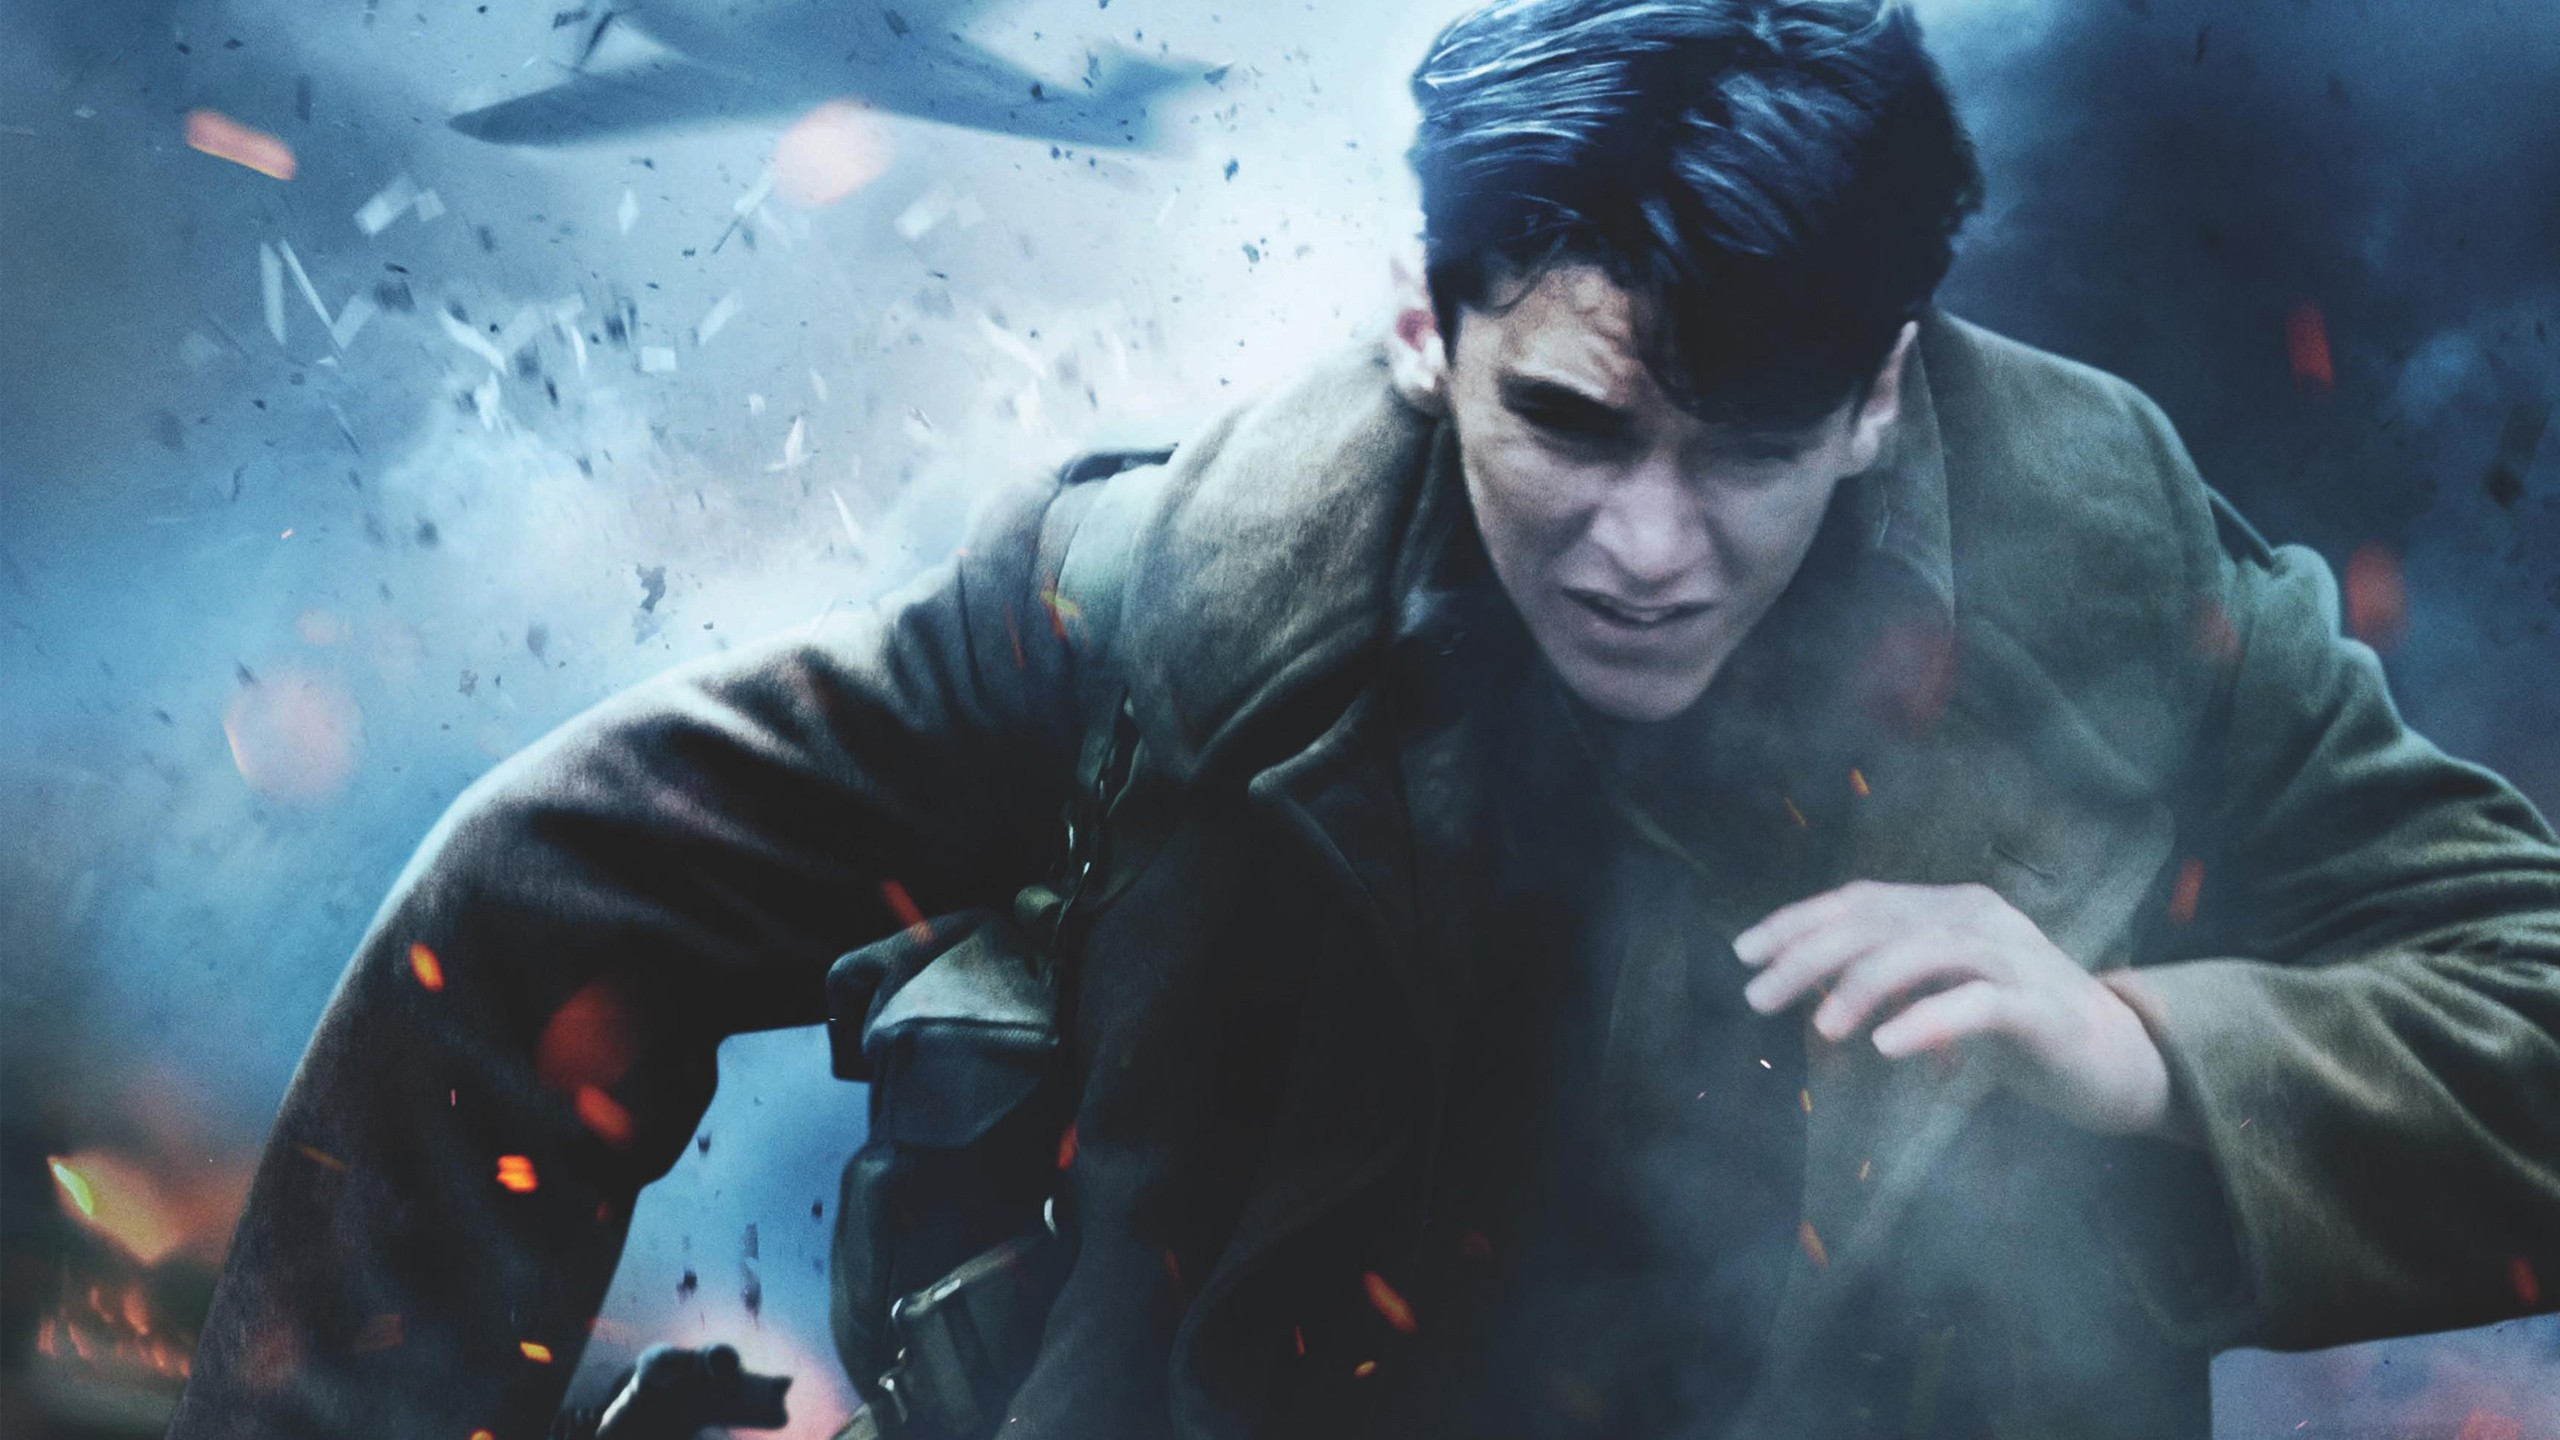 Iphone 6 Wallpaper Cute Animals Fionn Whitehead In Dunkirk 2017 Wallpapers Hd Wallpapers